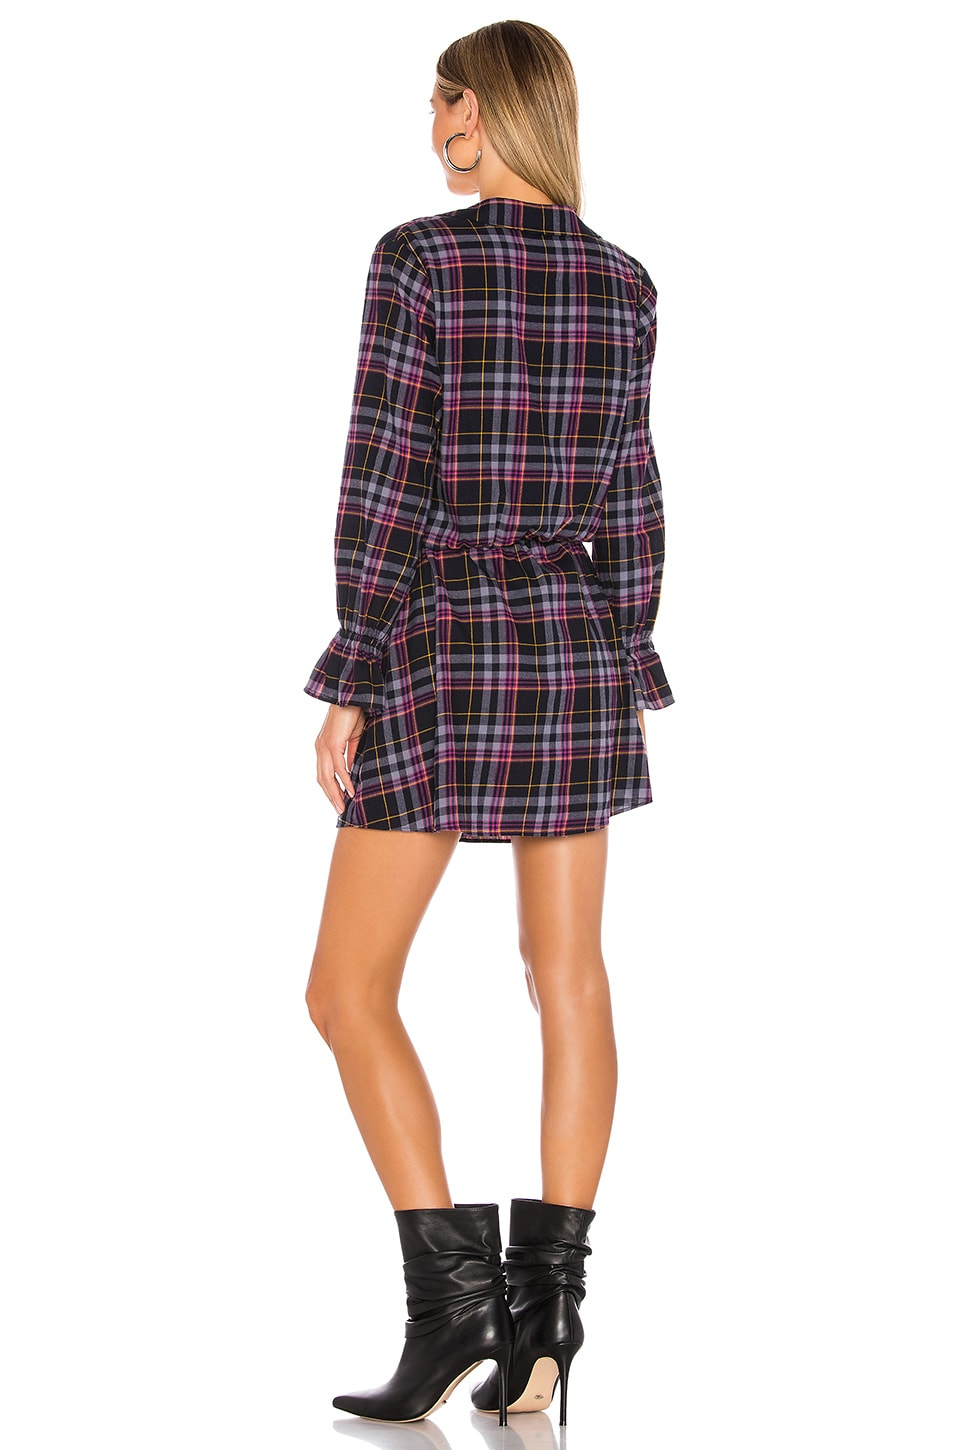 Button Up Plaid Dress, view 3, click to view large image.